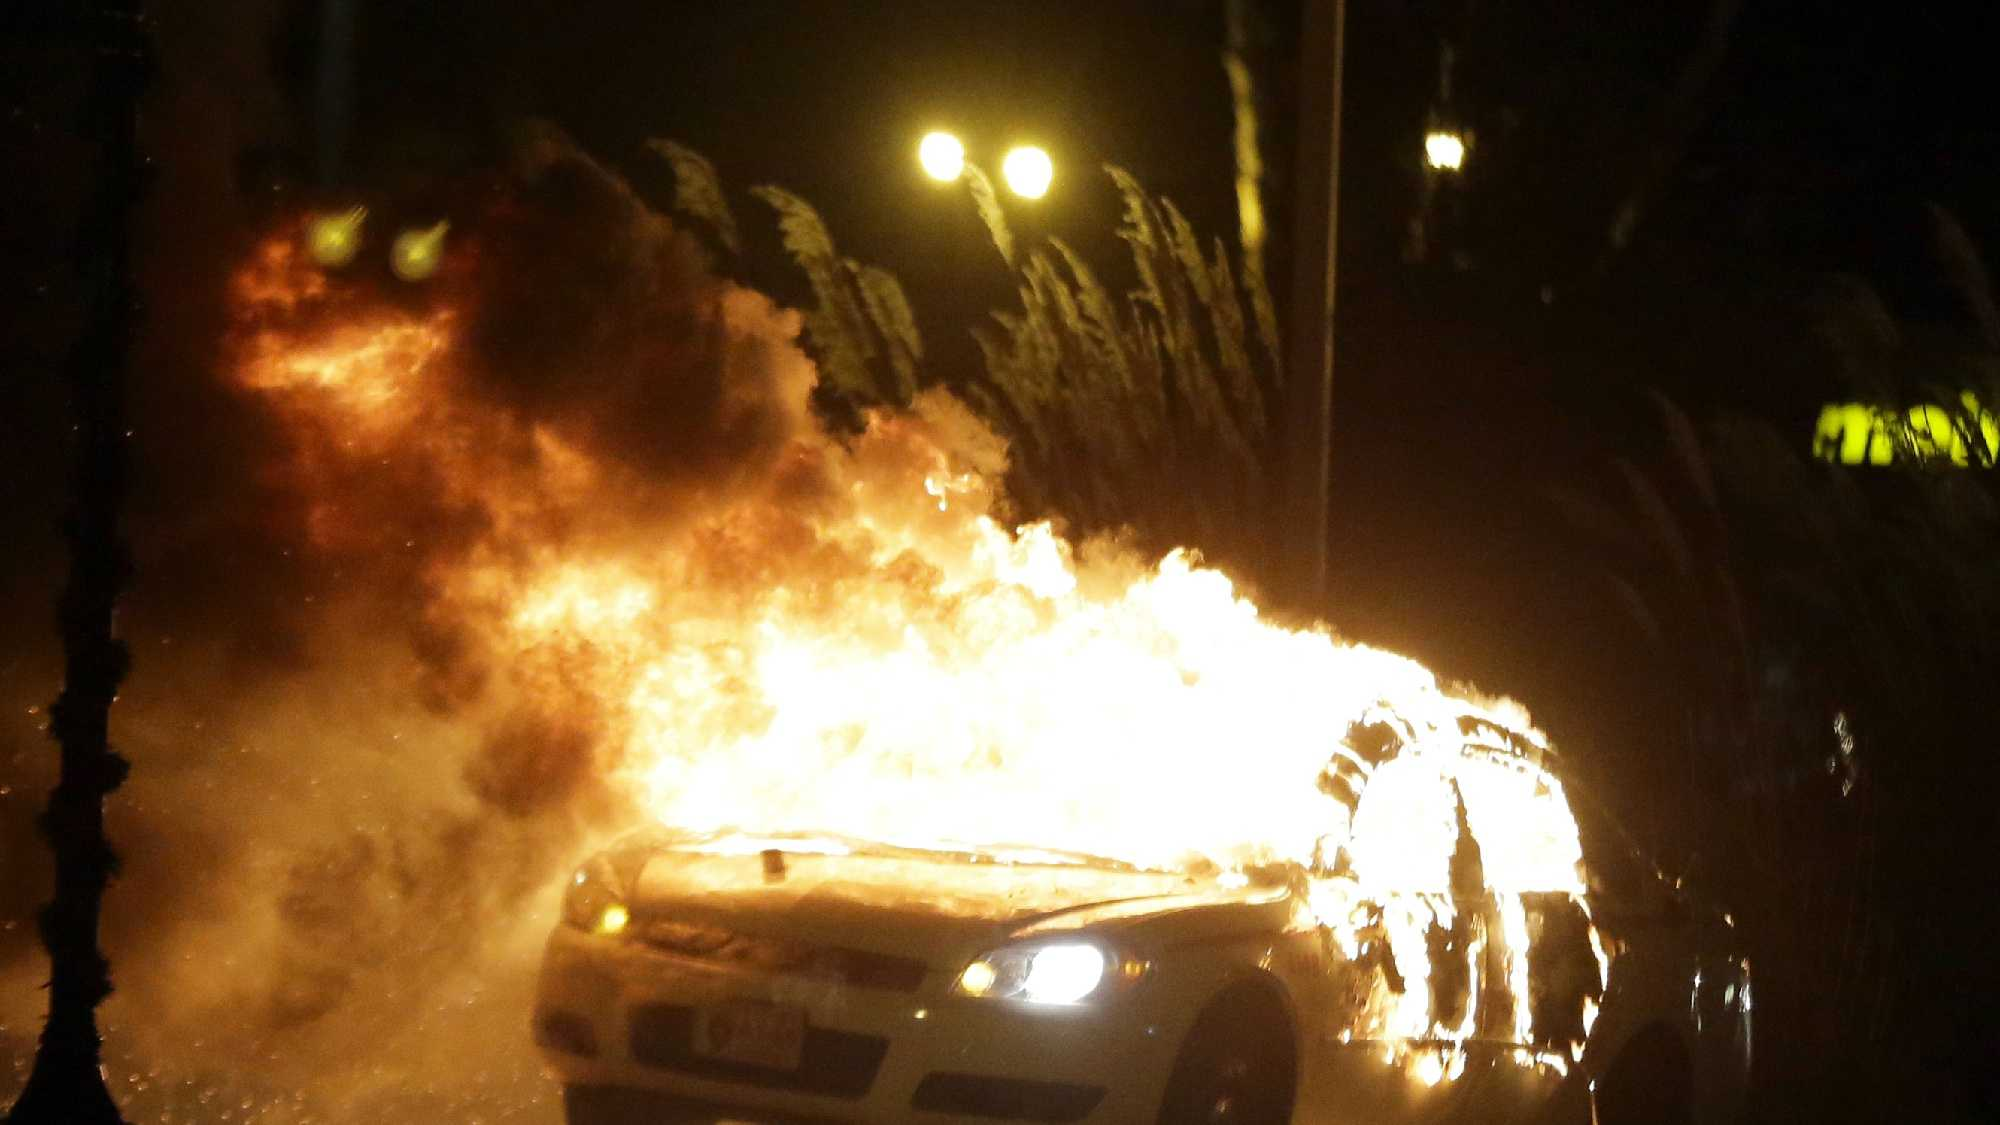 A police car is set on fire after a group of protesters vandalize the vehicle after the announcement of the grand jury decision Monday, Nov. 24, 2014, in Ferguson, Mo.